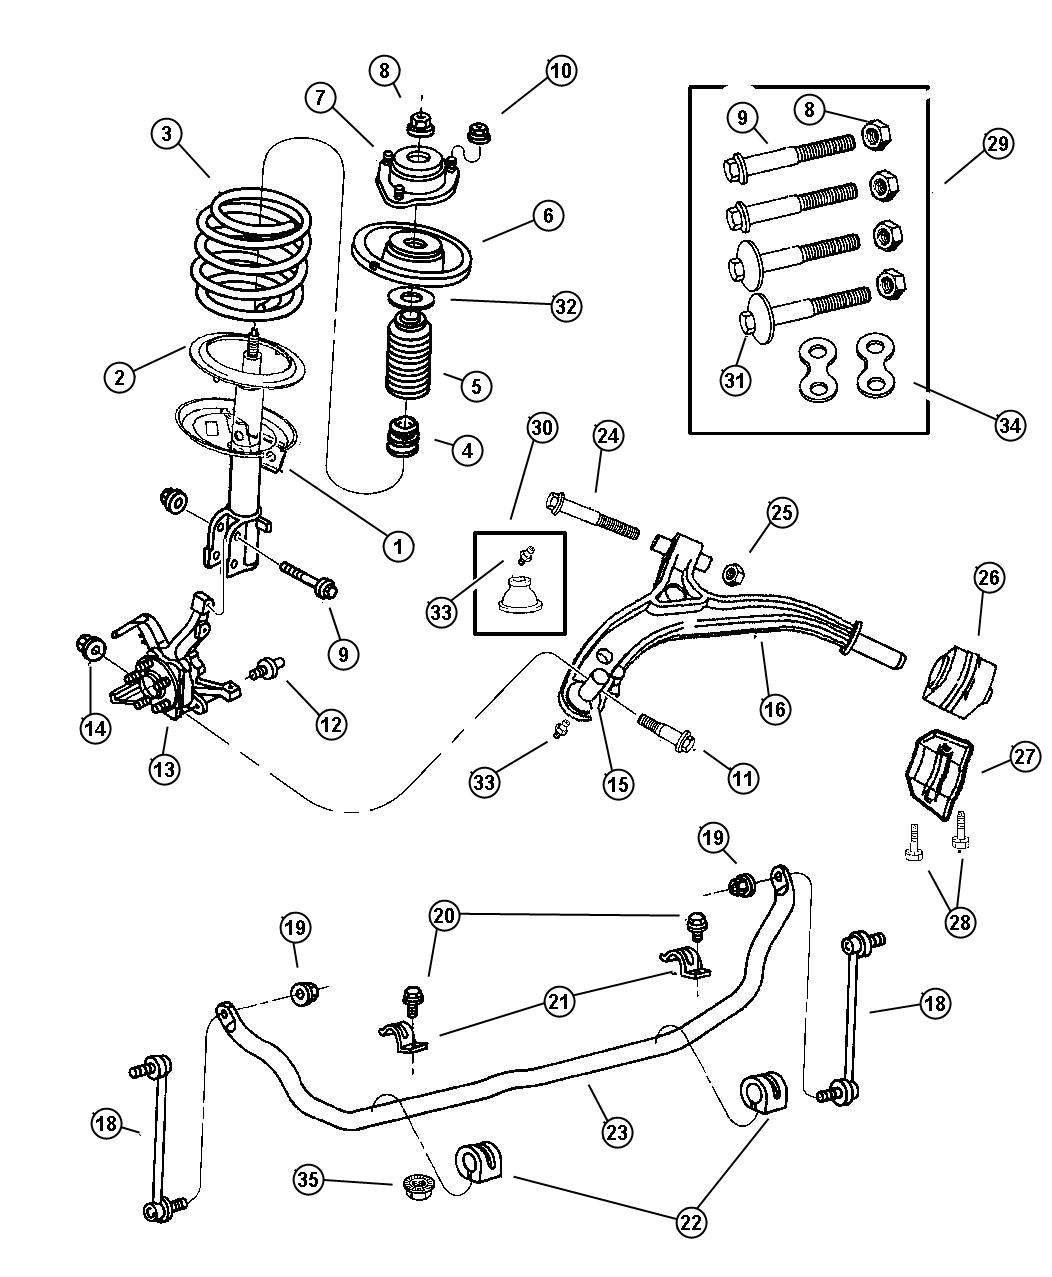 hight resolution of 2003 dodge caravan parts diagram 9 9 spikeballclubkoeln de u2022